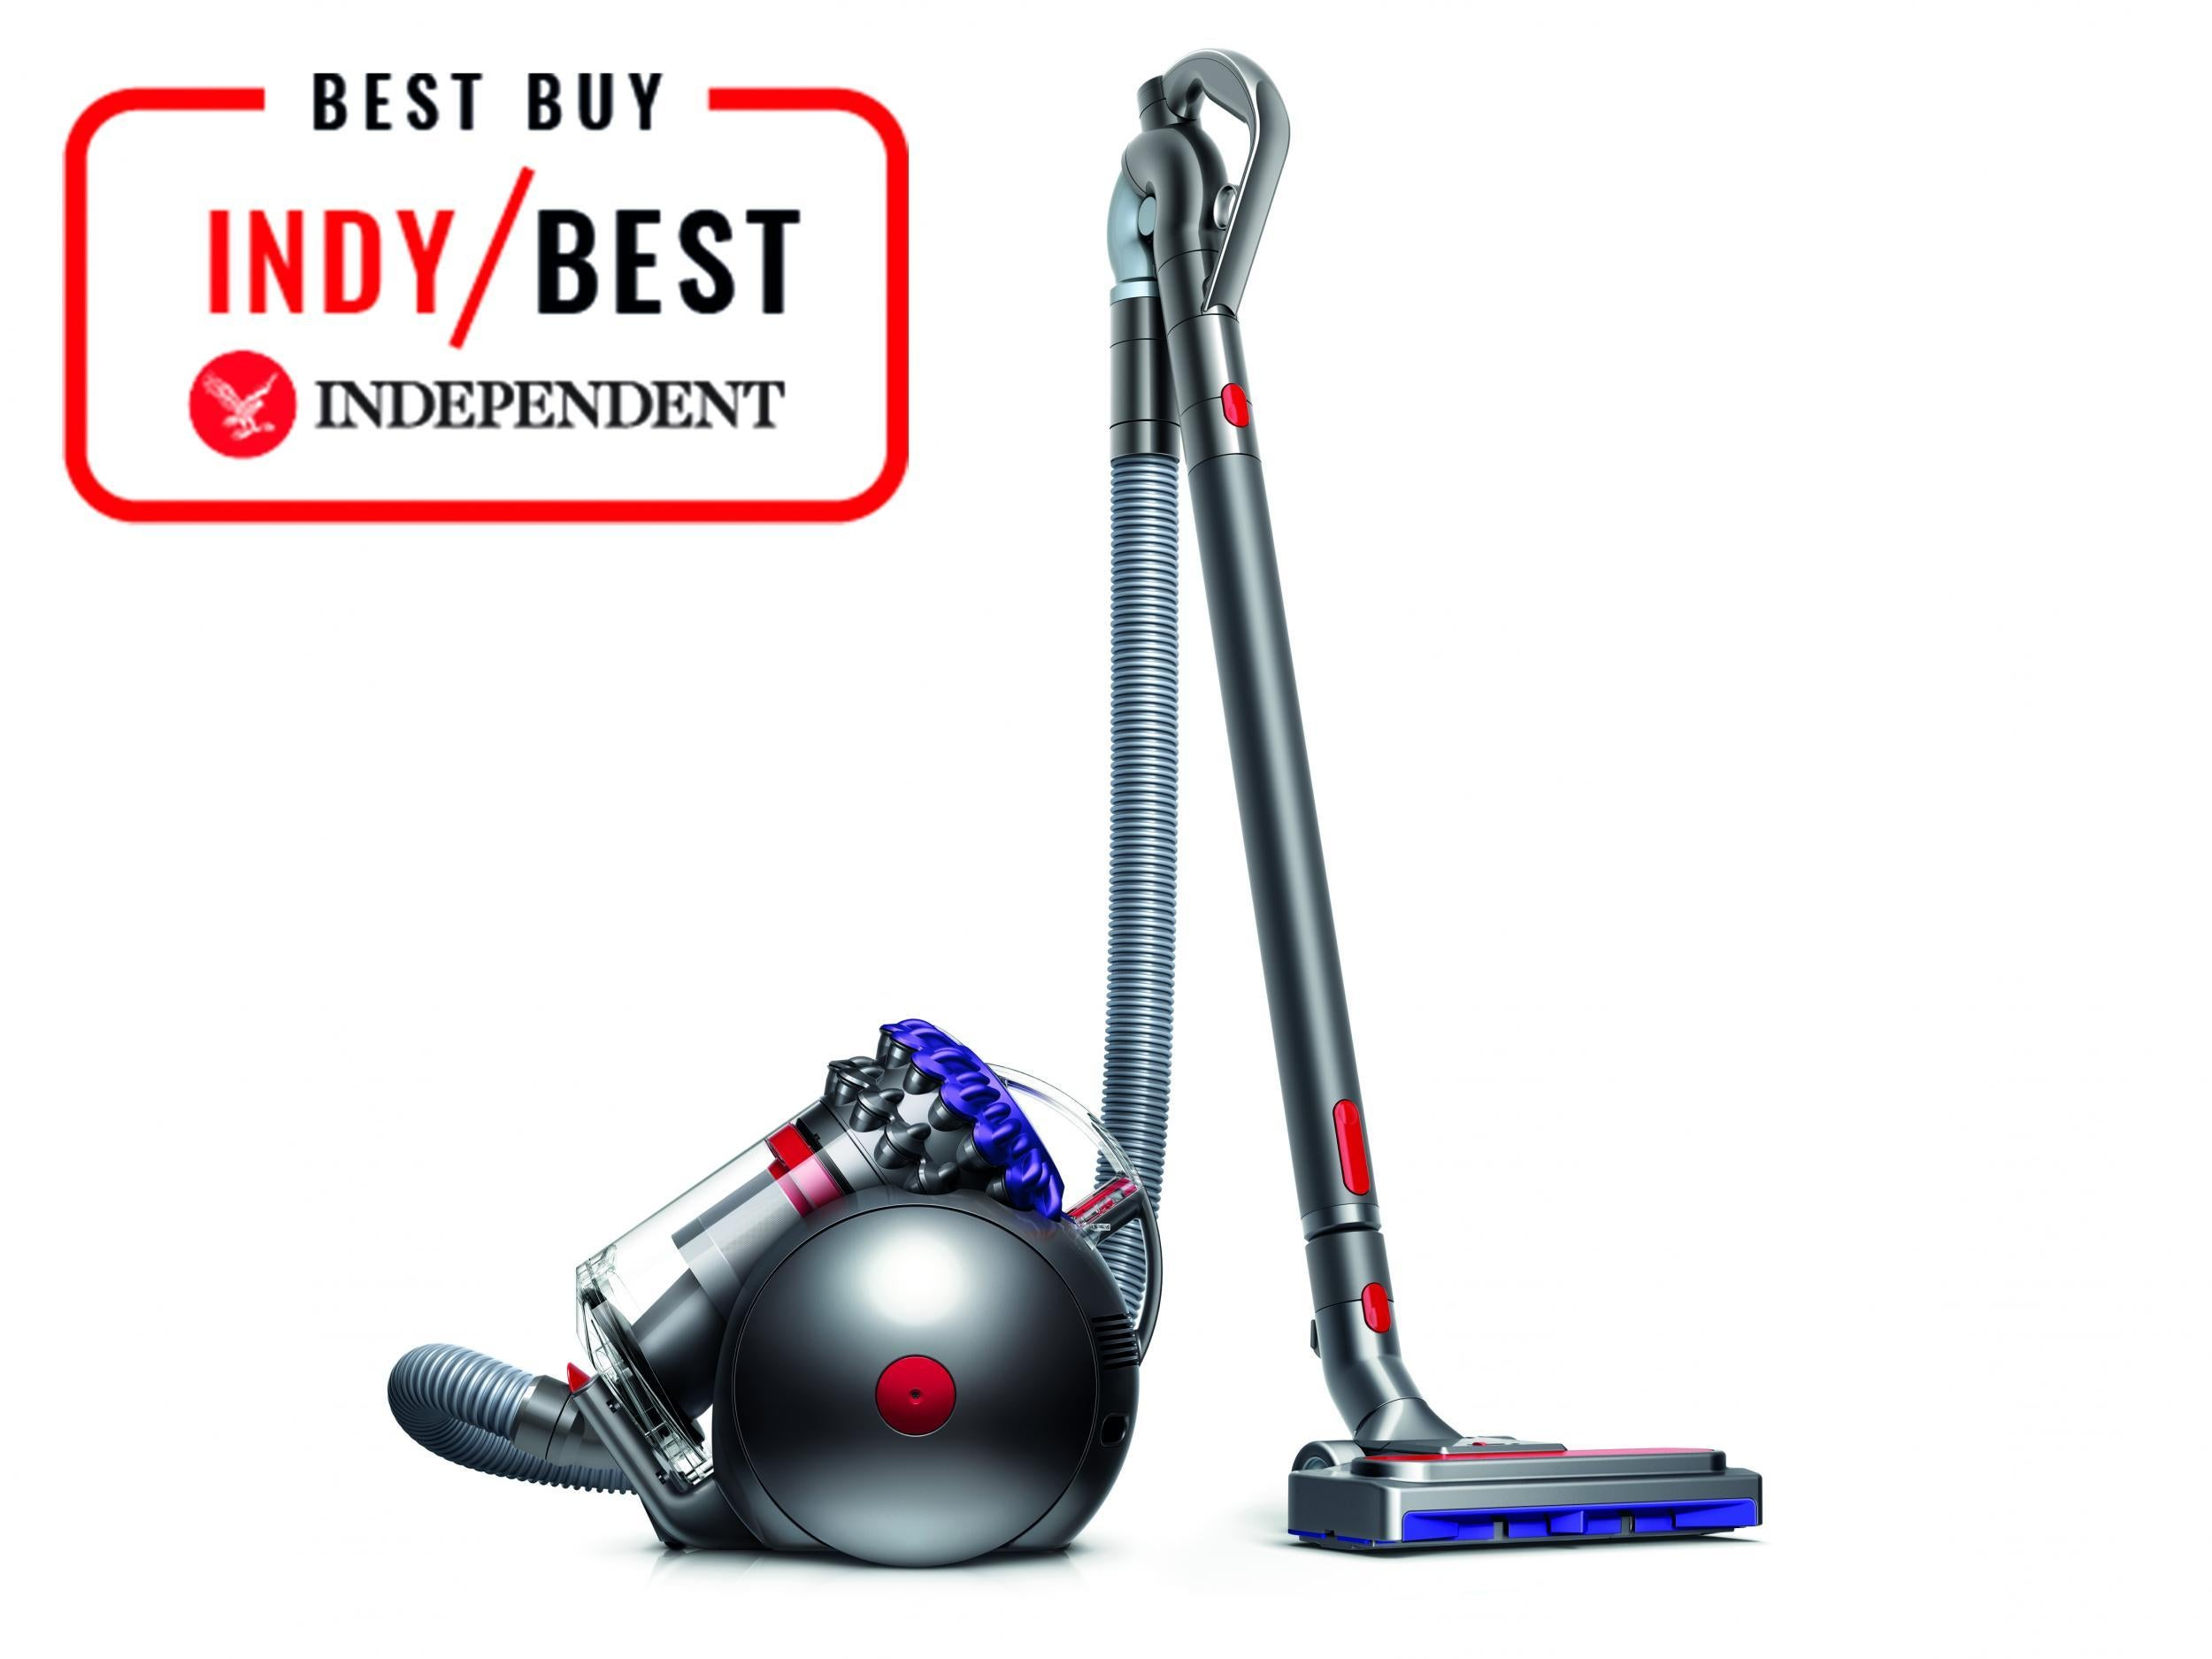 Carpet Vaccum Cleaner Carpet Vacuum Cleaner With Carpet